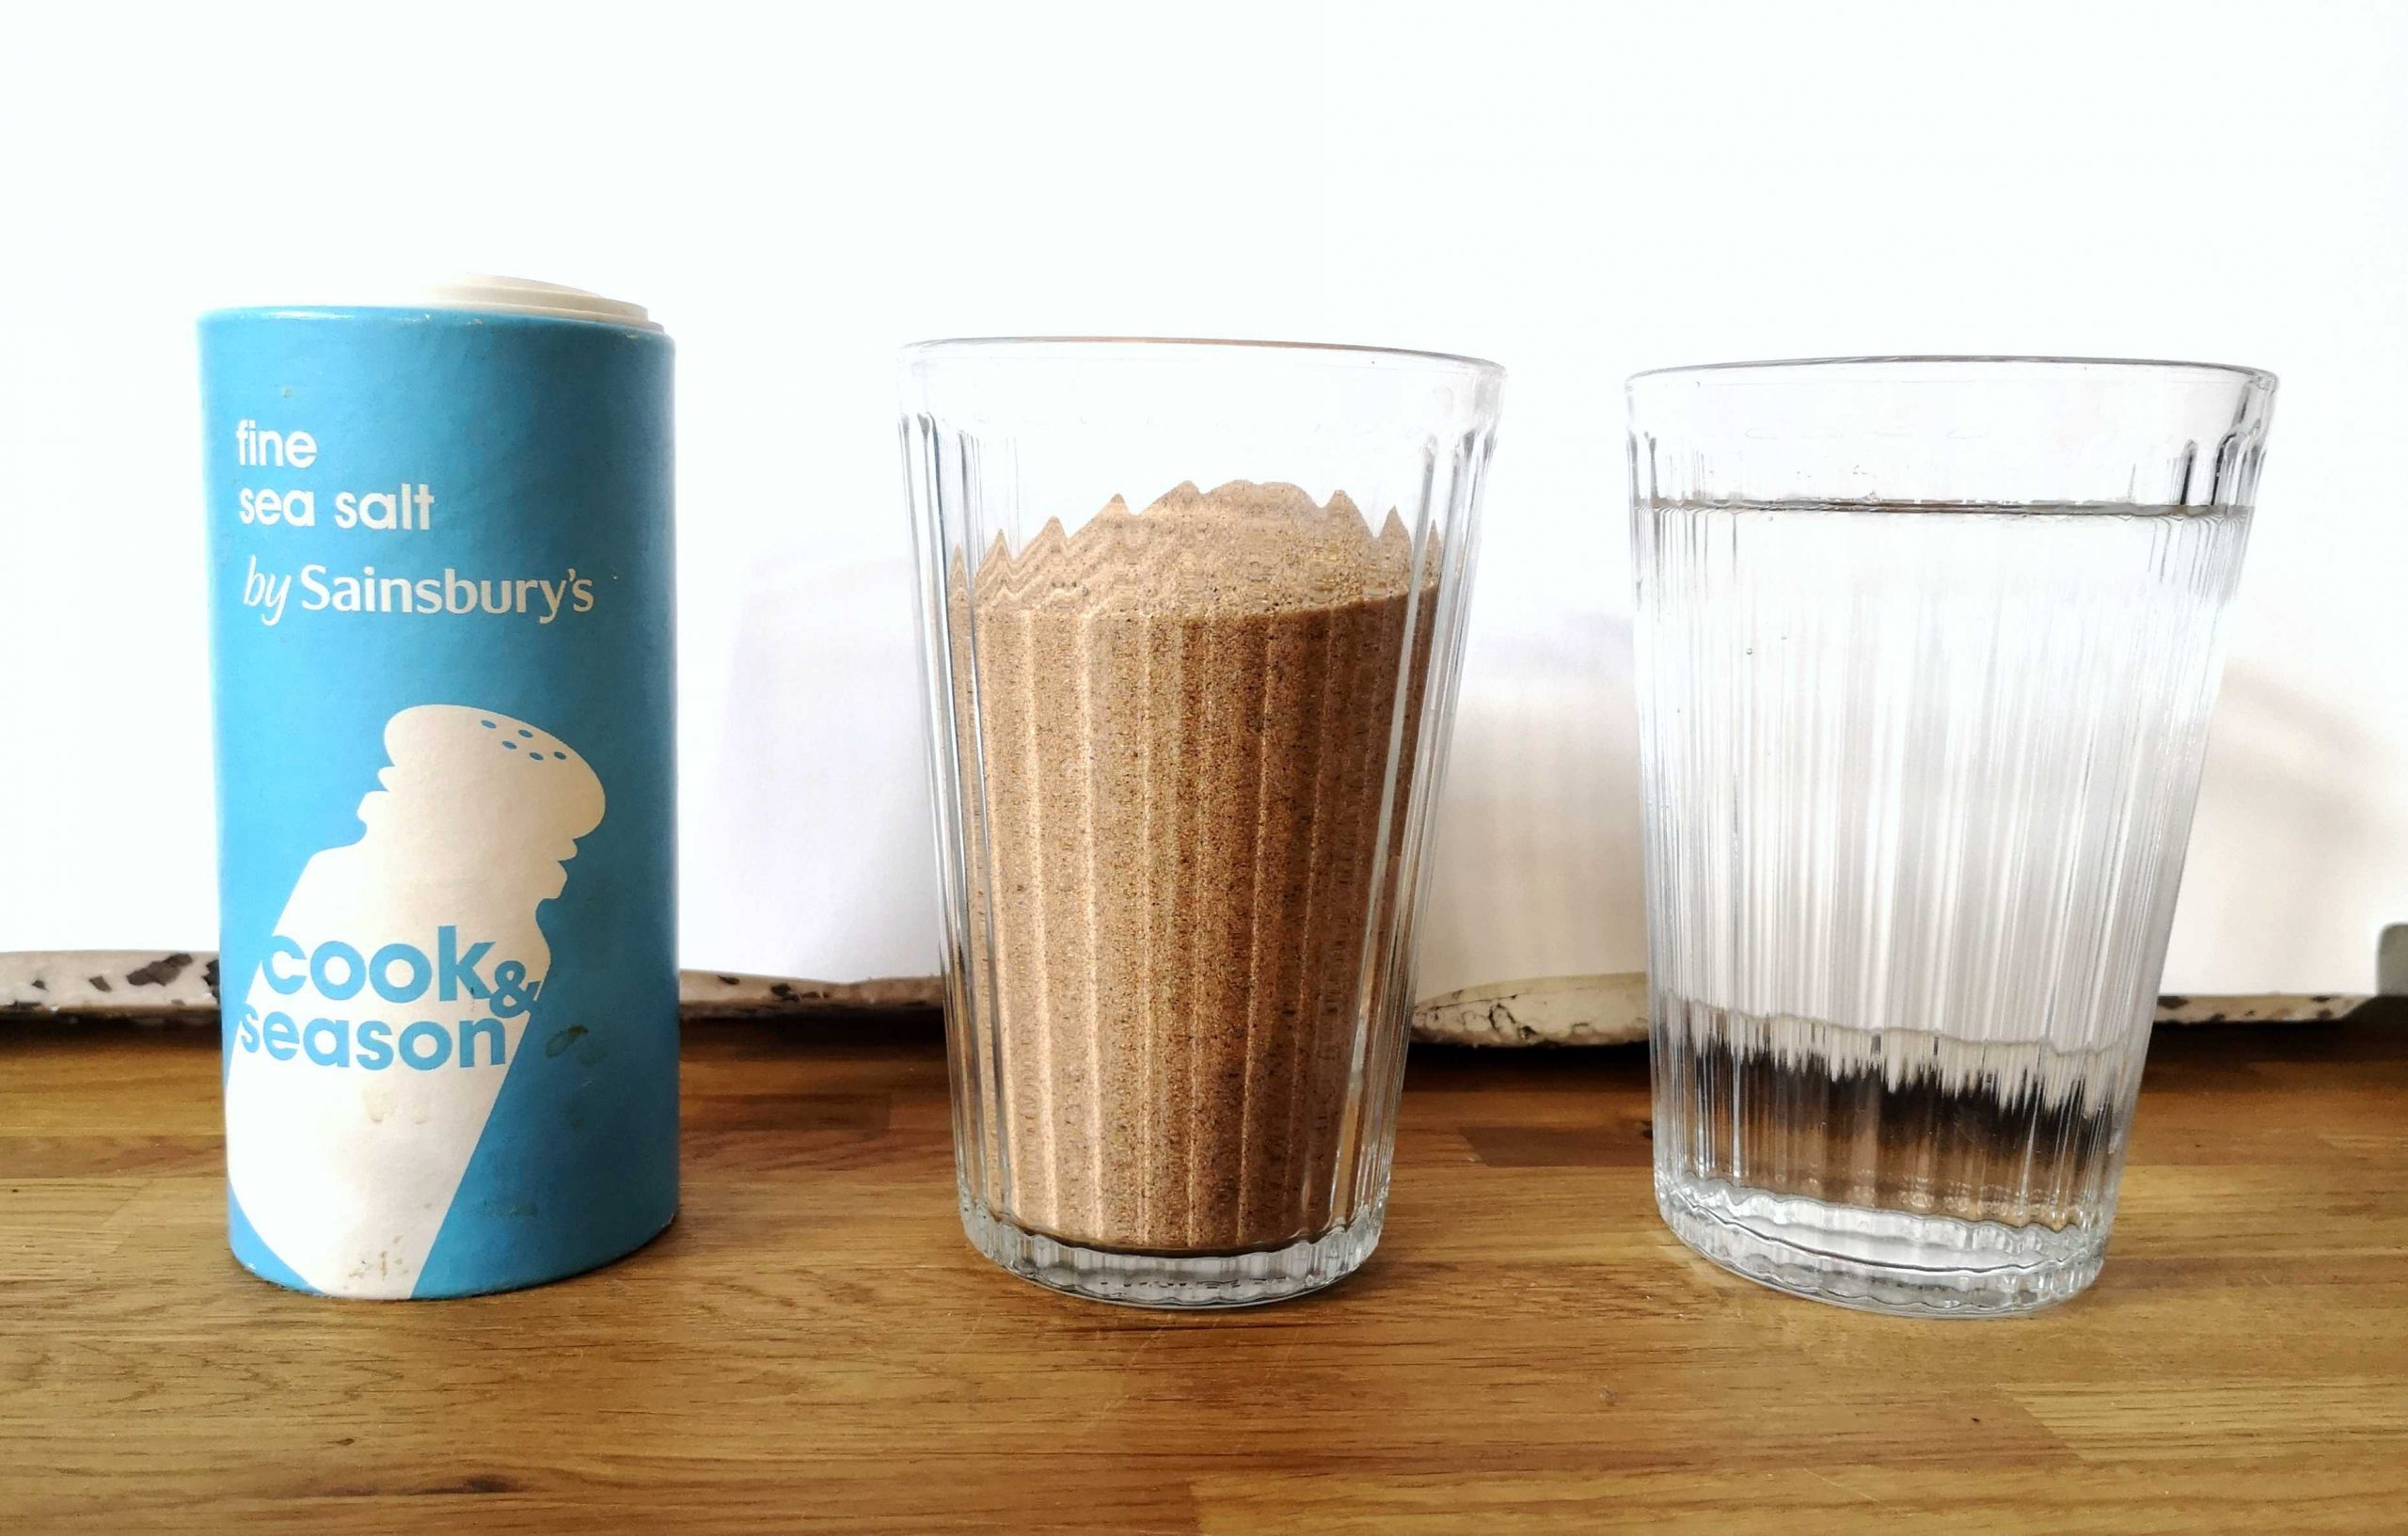 Will's submission to the Great British Photography Challenge shows a carton of sea salt, a glass of sand, and a glass of water side by side.